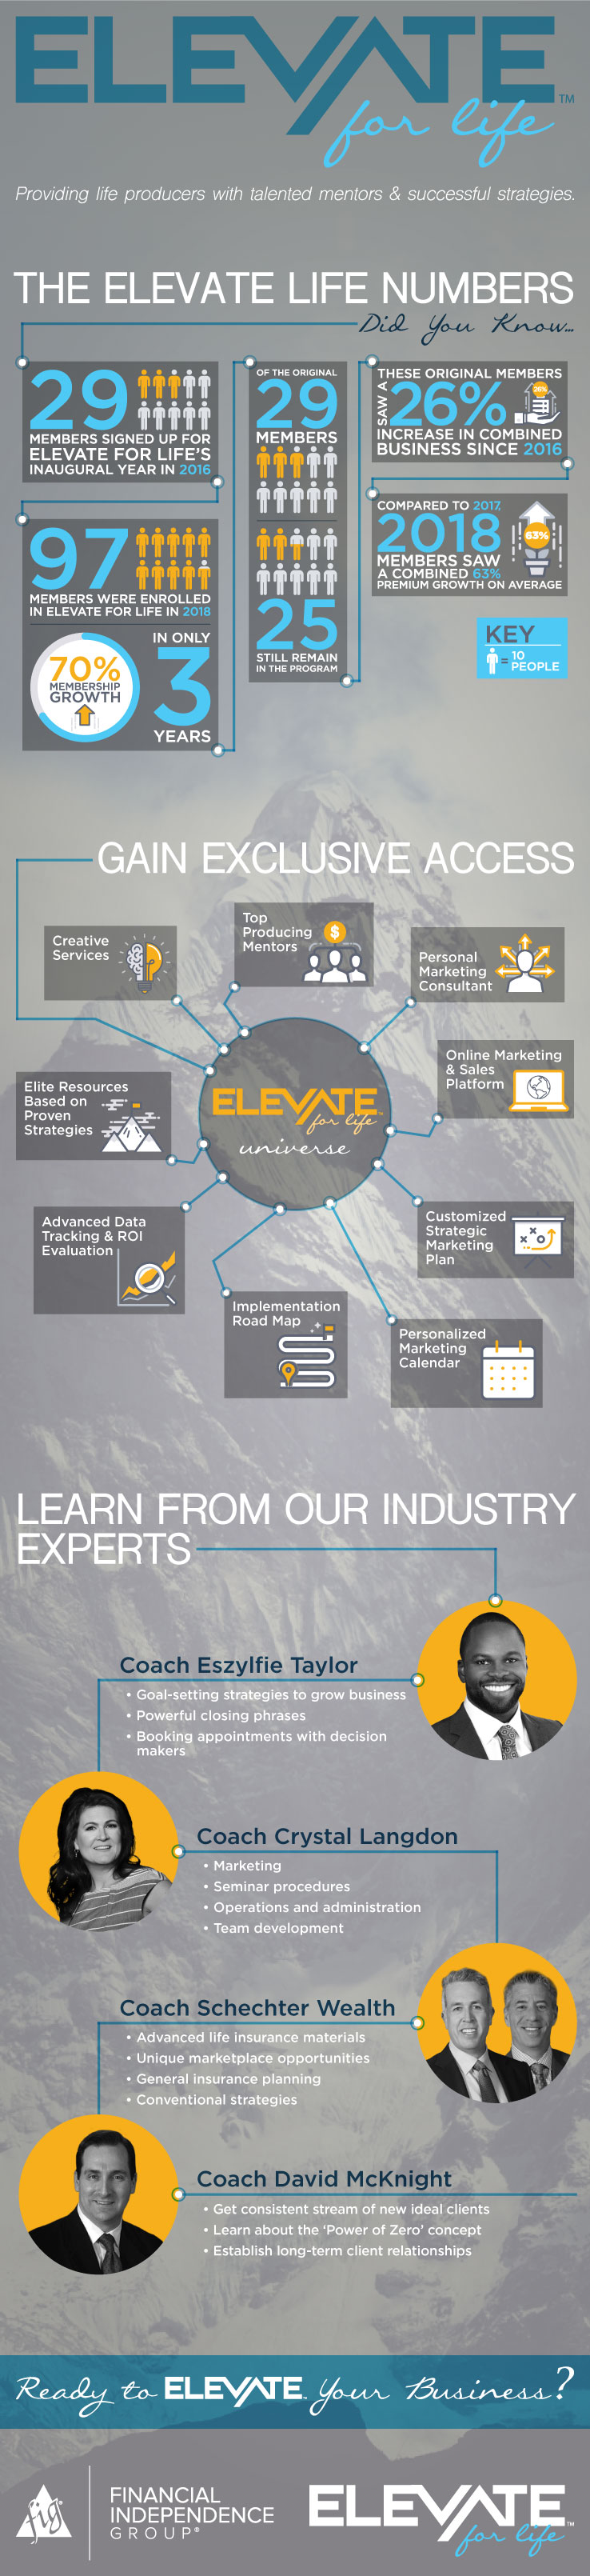 elevate for life marketing program infographic - financial independence group